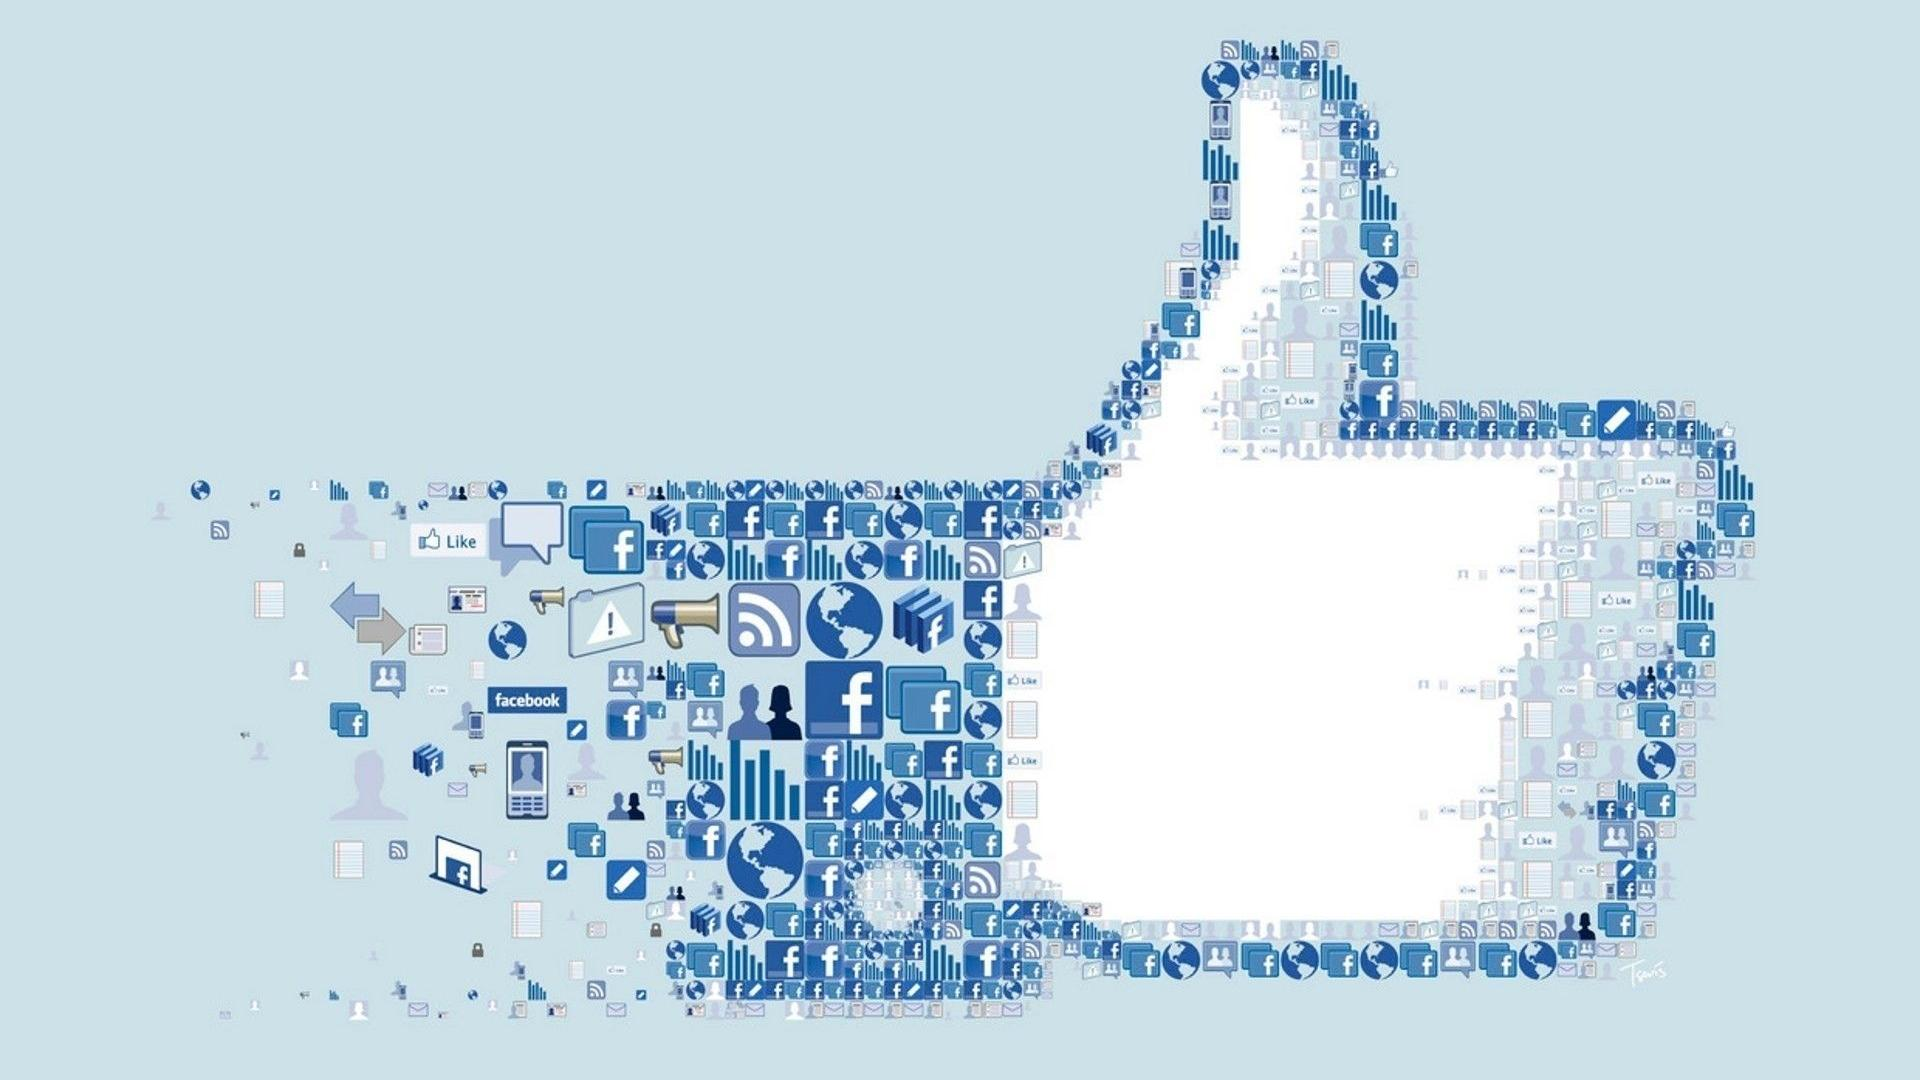 How can Facebook benefit one's business?